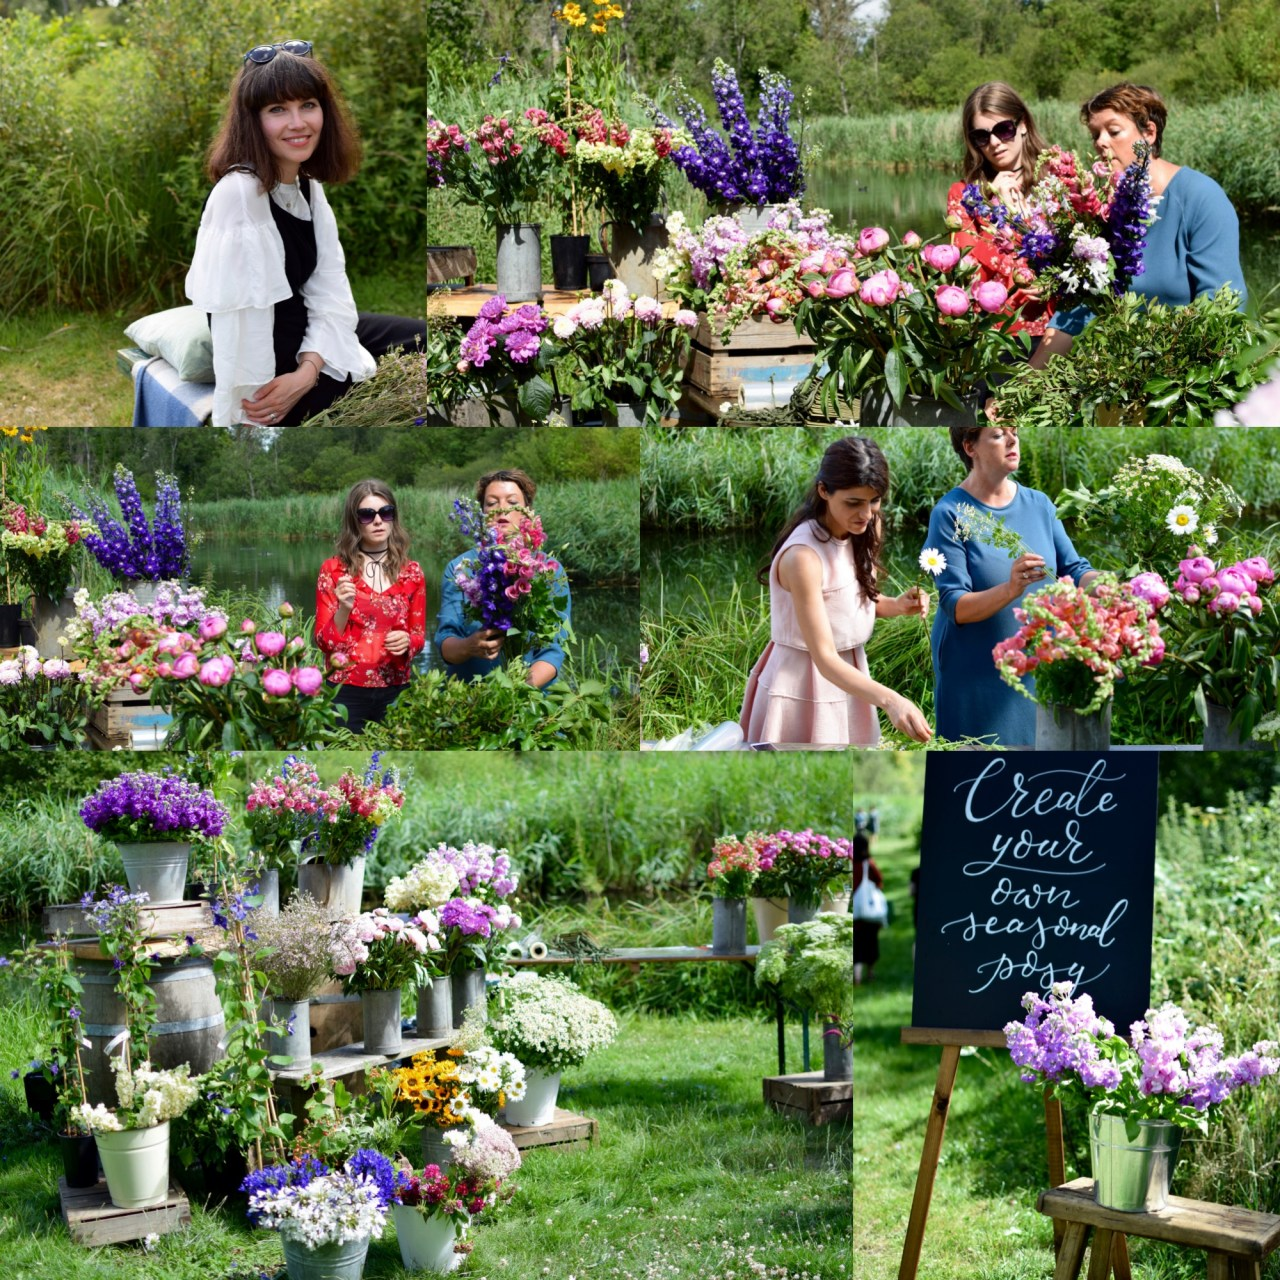 Vegan and vegetarian Garden Party blogger event at the Waitrose Leckford Estate, Hampshire, England. Waitrose is the only UK supermarket with its own Farm. #ad